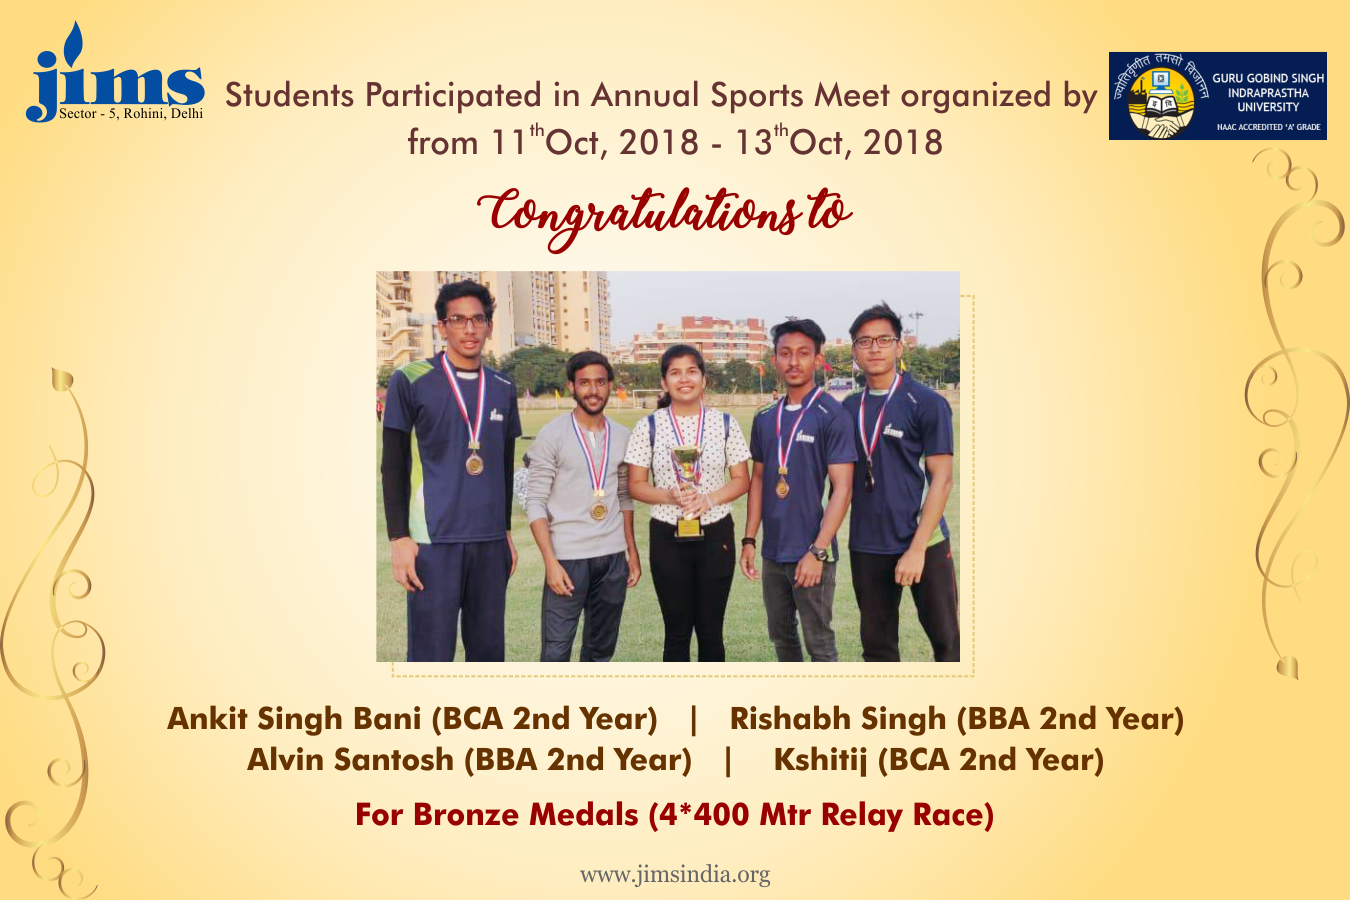 JIMS Rohini congratulate Ankit Singh Bani (BCA 2nd Year), Rishabh Singh (BBA 2nd Year), Alvin Santosh (BBA 2nd Year) and Kshitij (BCA 2nd Year) - Bronze medals (4*400 Mtr Relay Race)